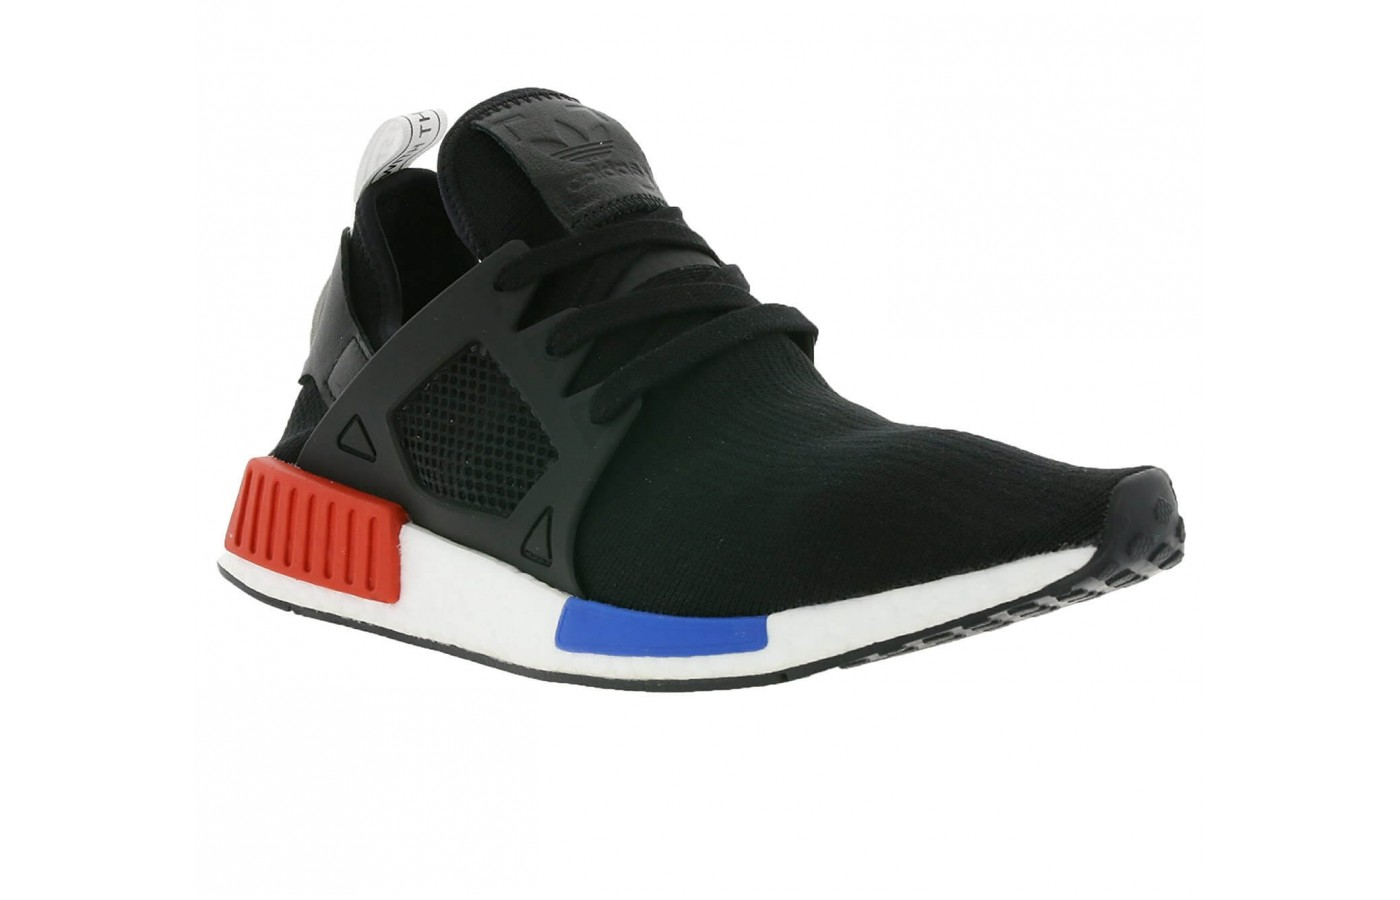 best service 59fff a0120 Adidas NMD XR1 Reviewed for Performance and Quality